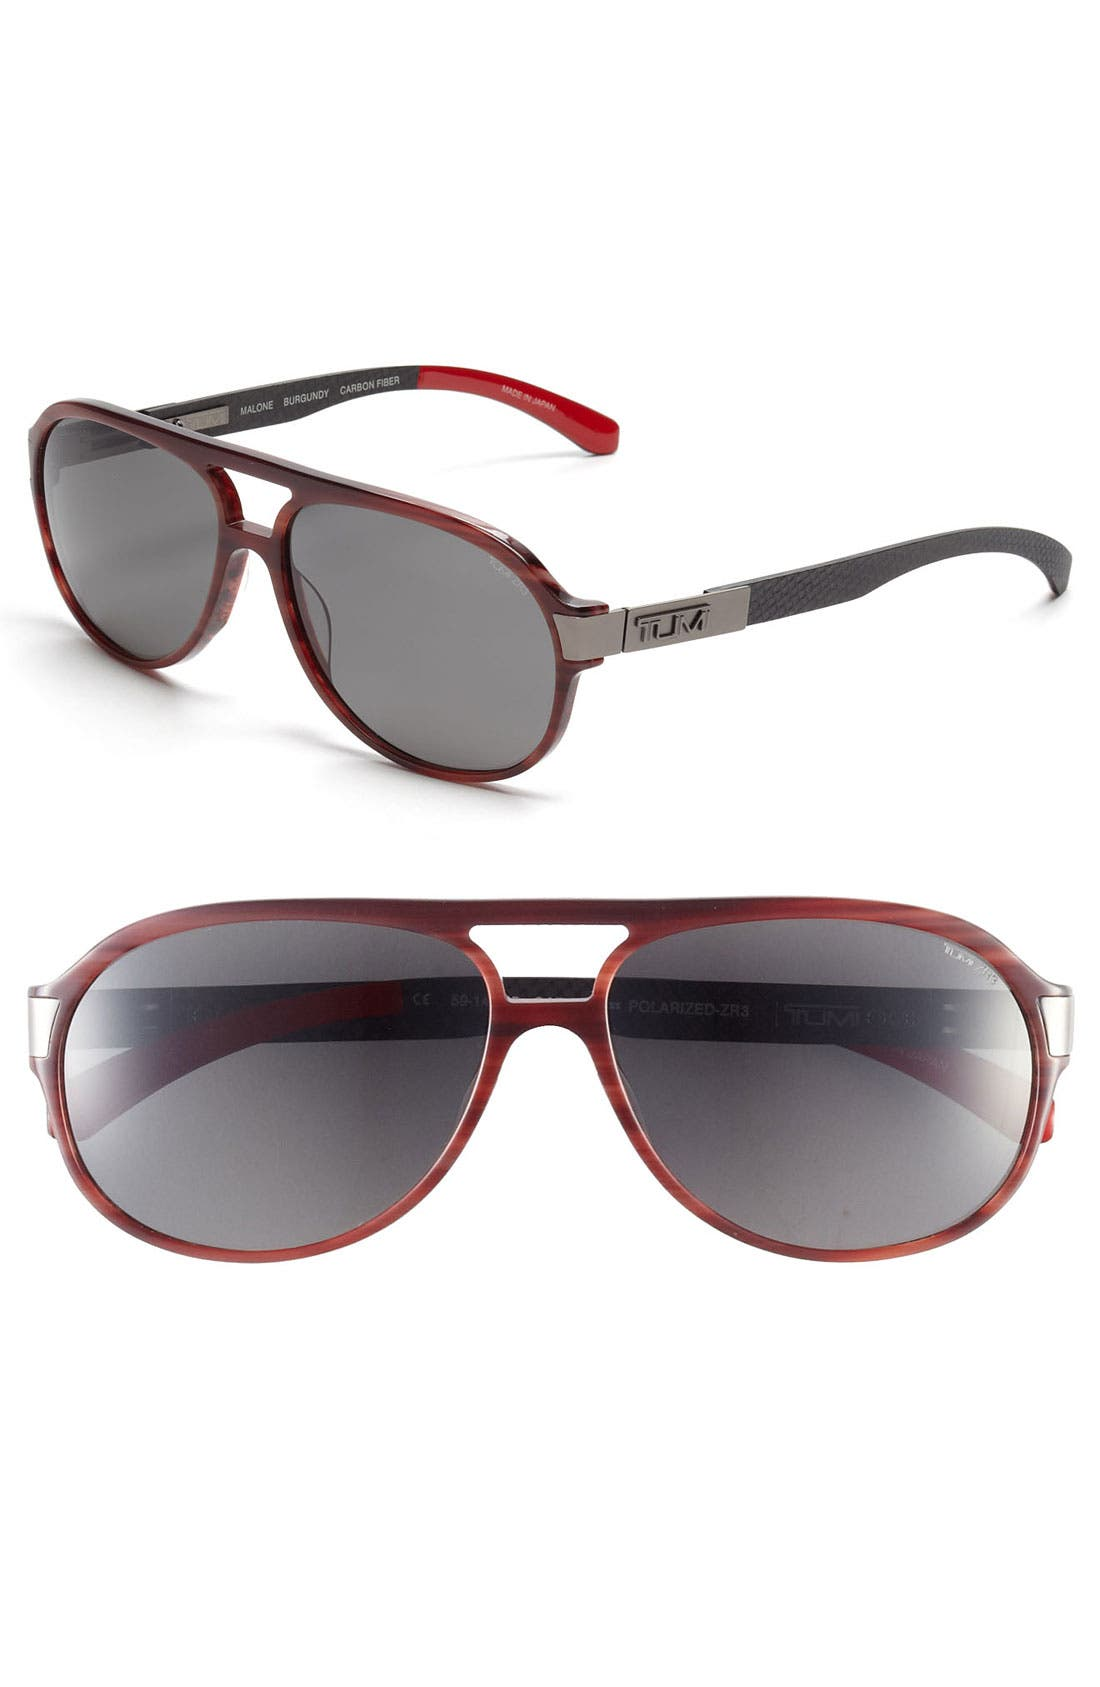 Main Image - Tumi 'Malone' 59mm Polarized Sunglasses